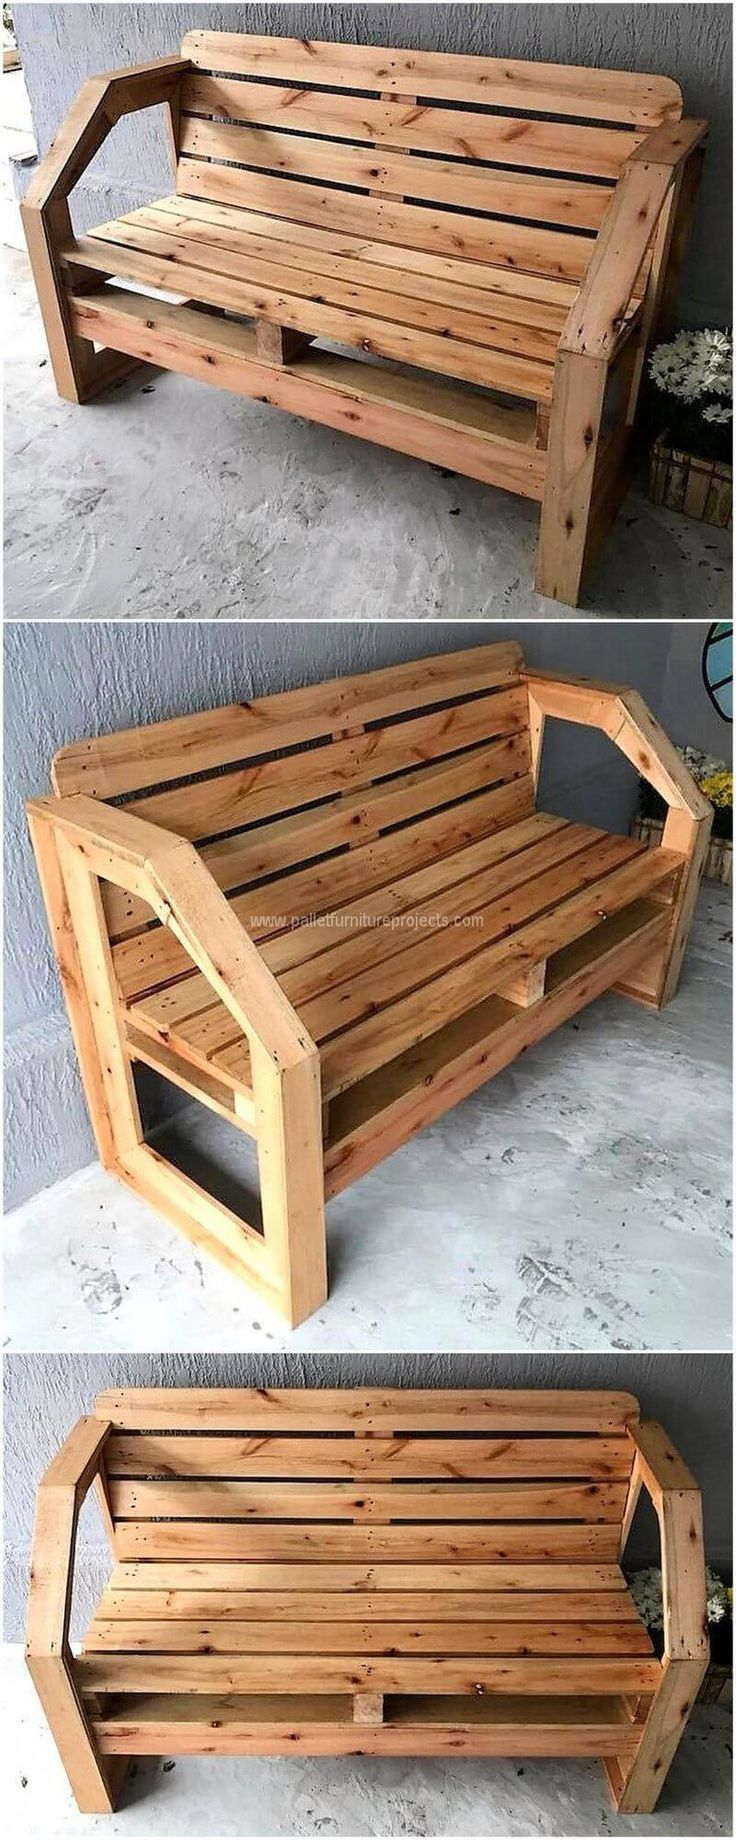 Discover more about Pallet Projects #pallet #palletshelf  #about #discover #pallet #palletshe... #sofaauspalletten Discover more about Pallet Projects #pallet #palletshelf #sofaauspalletten Discover more about Pallet Projects #pallet #palletshelf  #about #discover #pallet #palletshe... #sofaauspalletten Discover more about Pallet Projects #pallet #palletshelf #sofaauspalletten